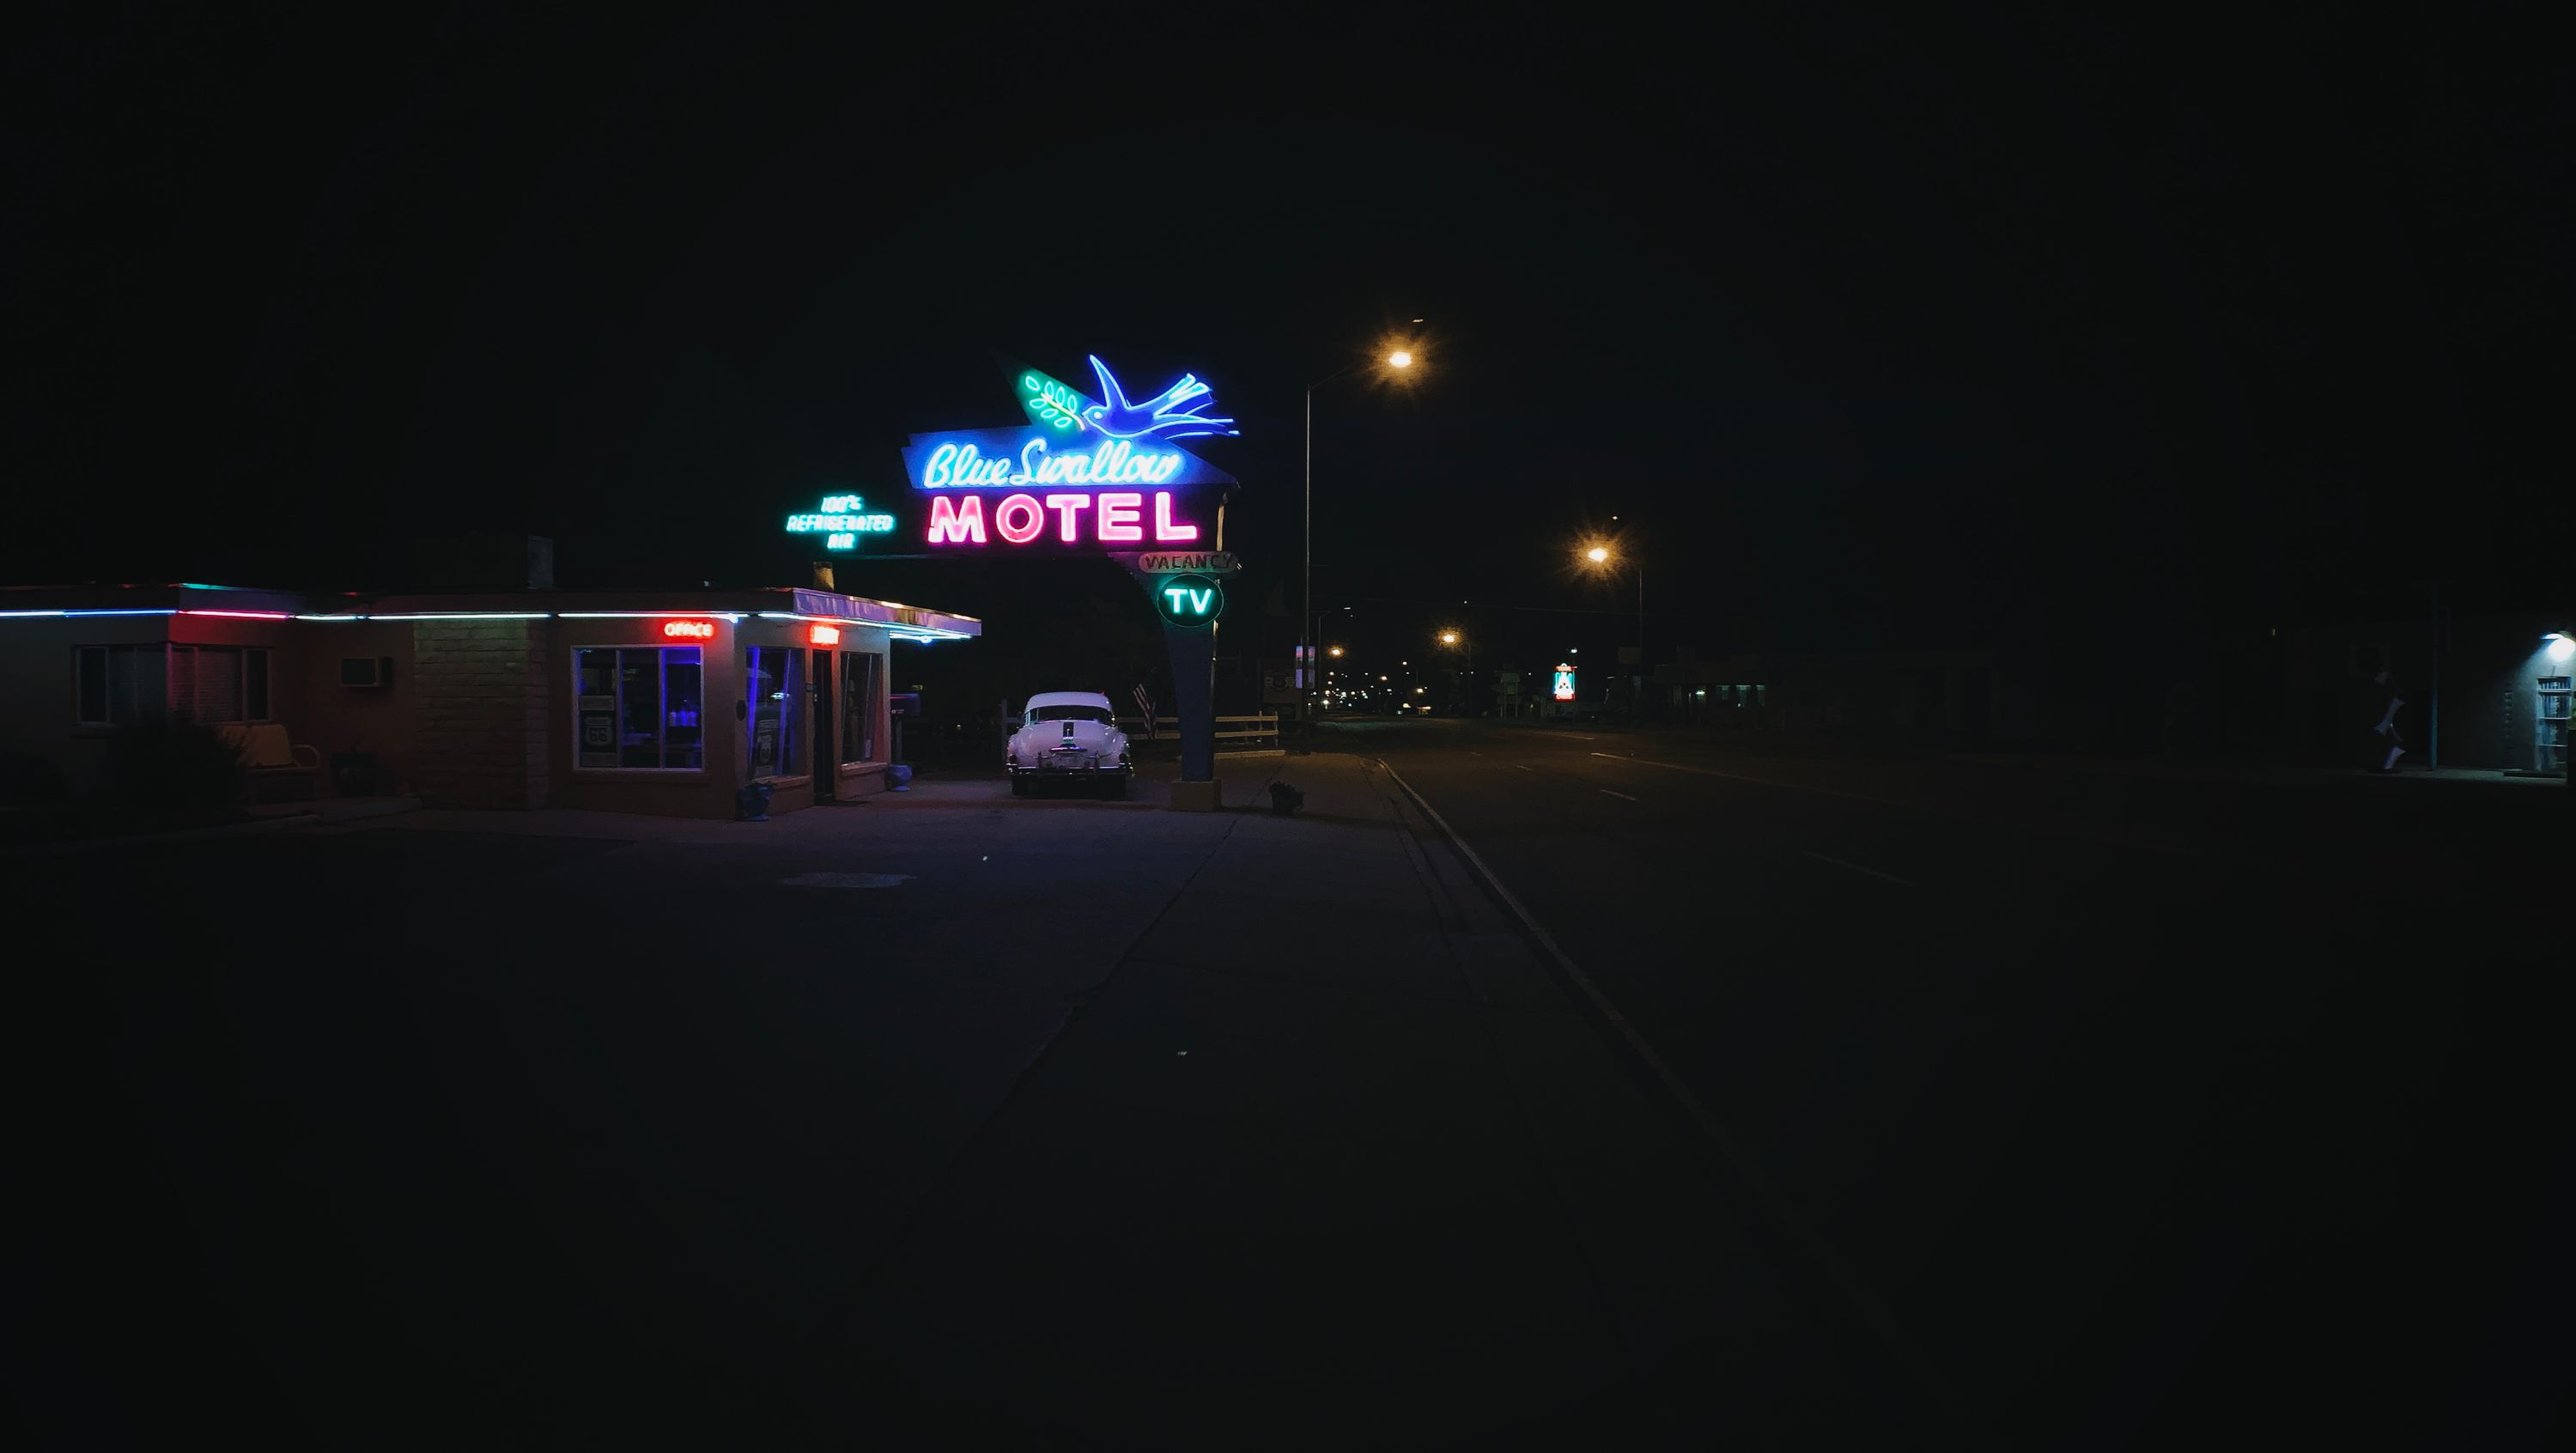 Blue Swallow Motel in Tucumcari, NM